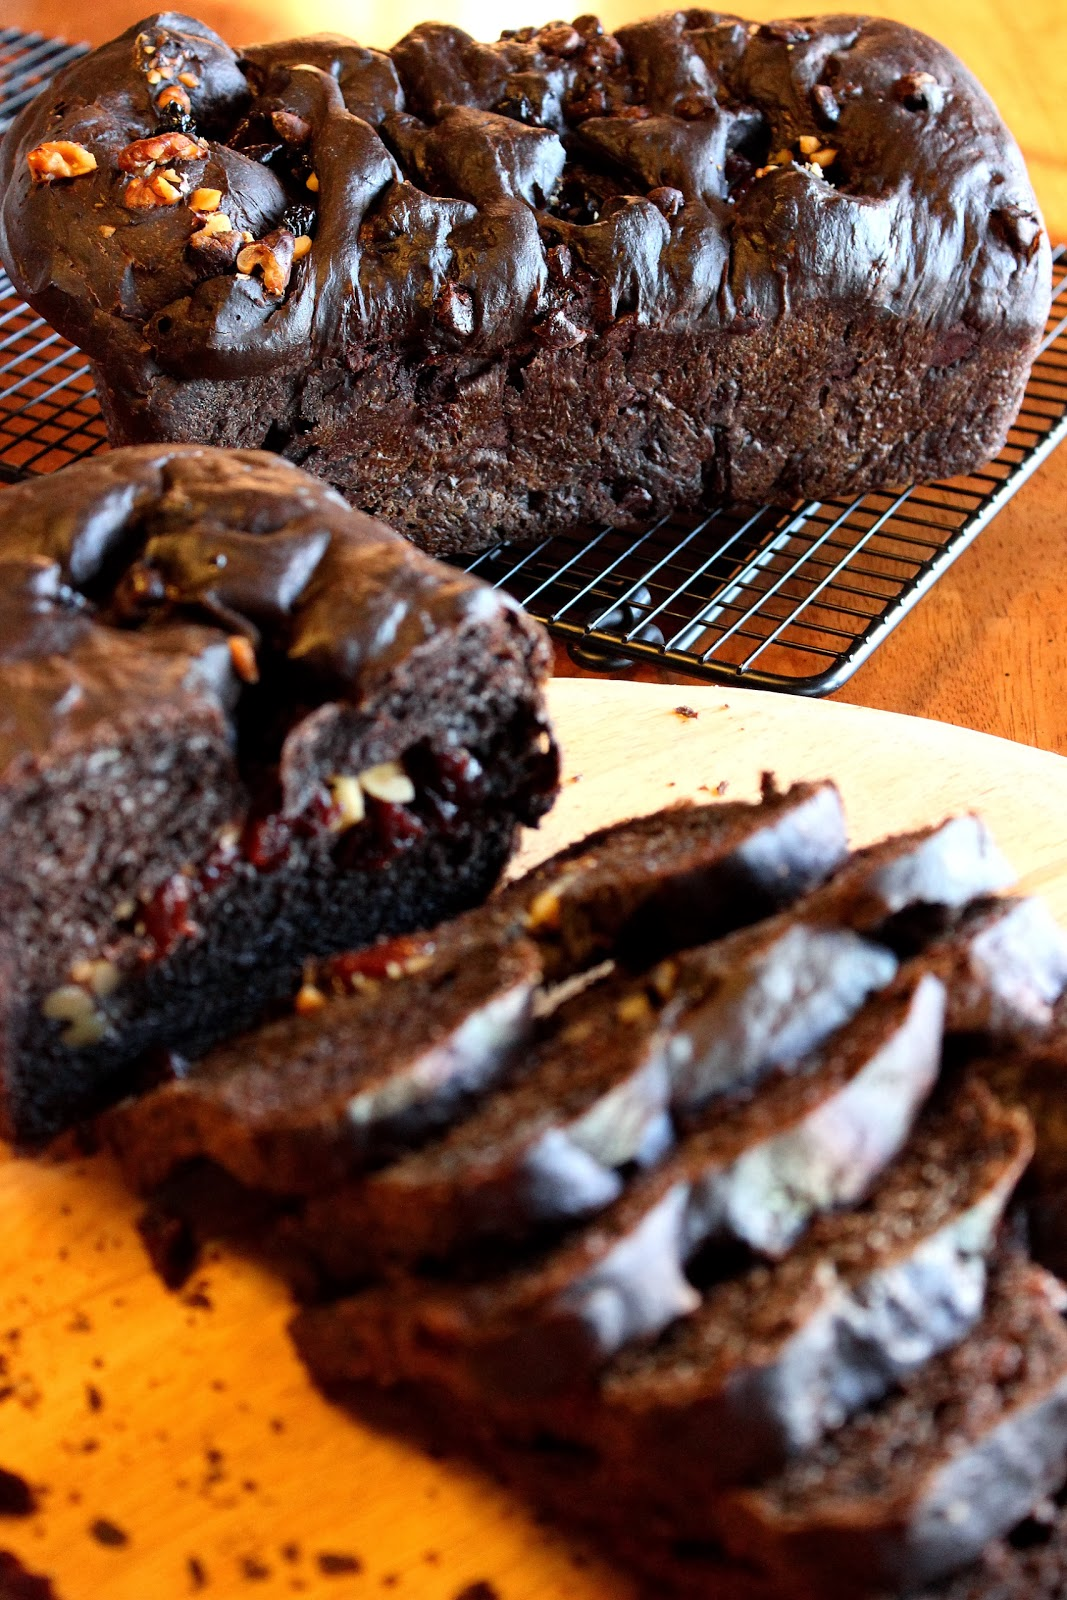 Kudos Kitchen By Renee - Chocolate Cherry Bread with Walnuts Recipe